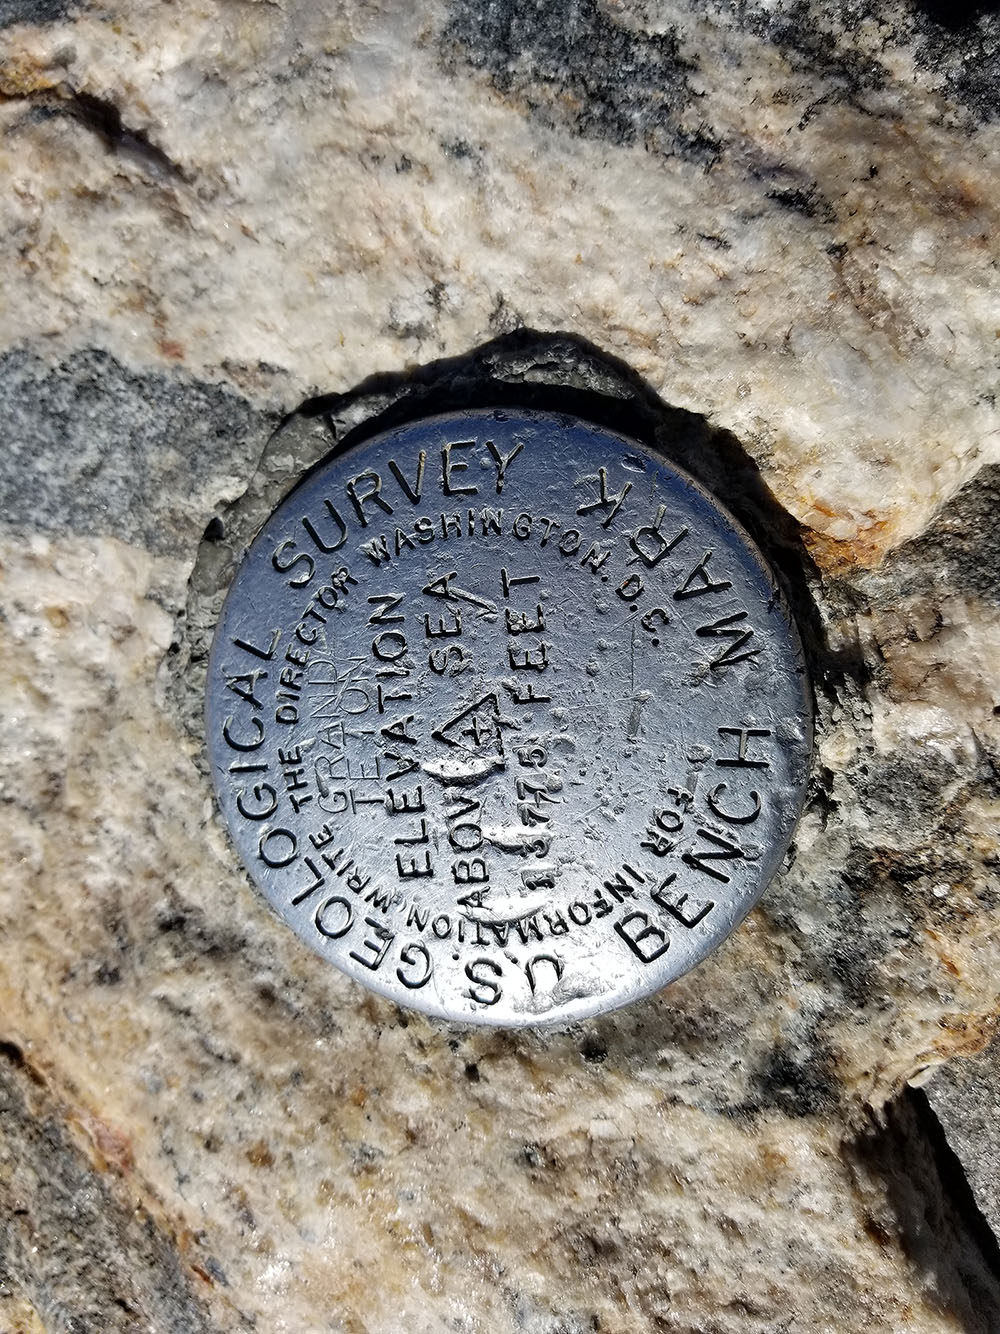 The summit marker on the Grand Teton, 13,775 feet above sea level